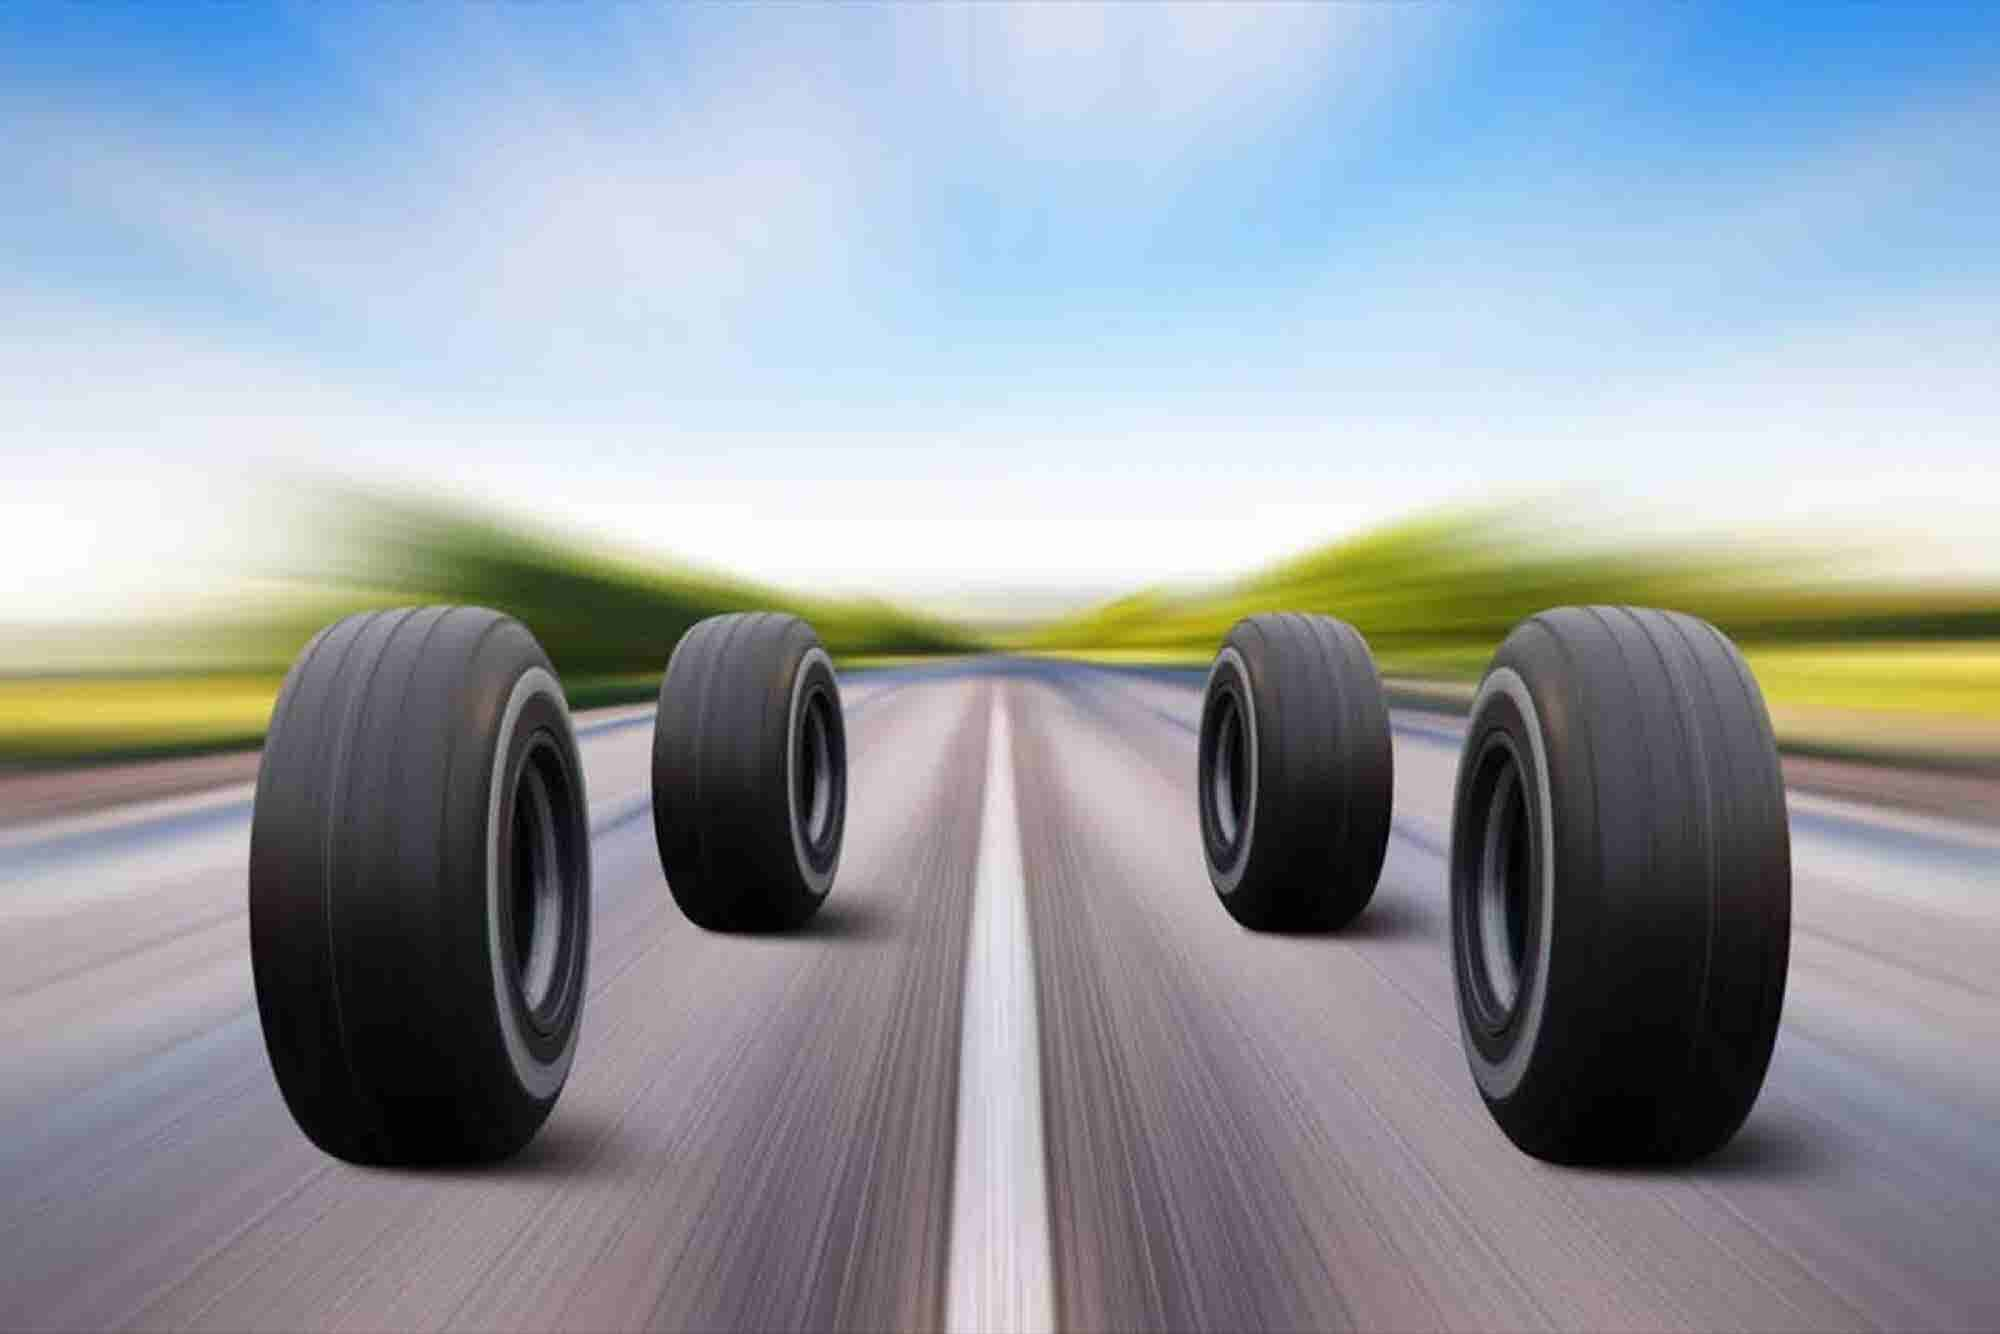 Long-Term Success Starts With Managing Your Startup's Runway